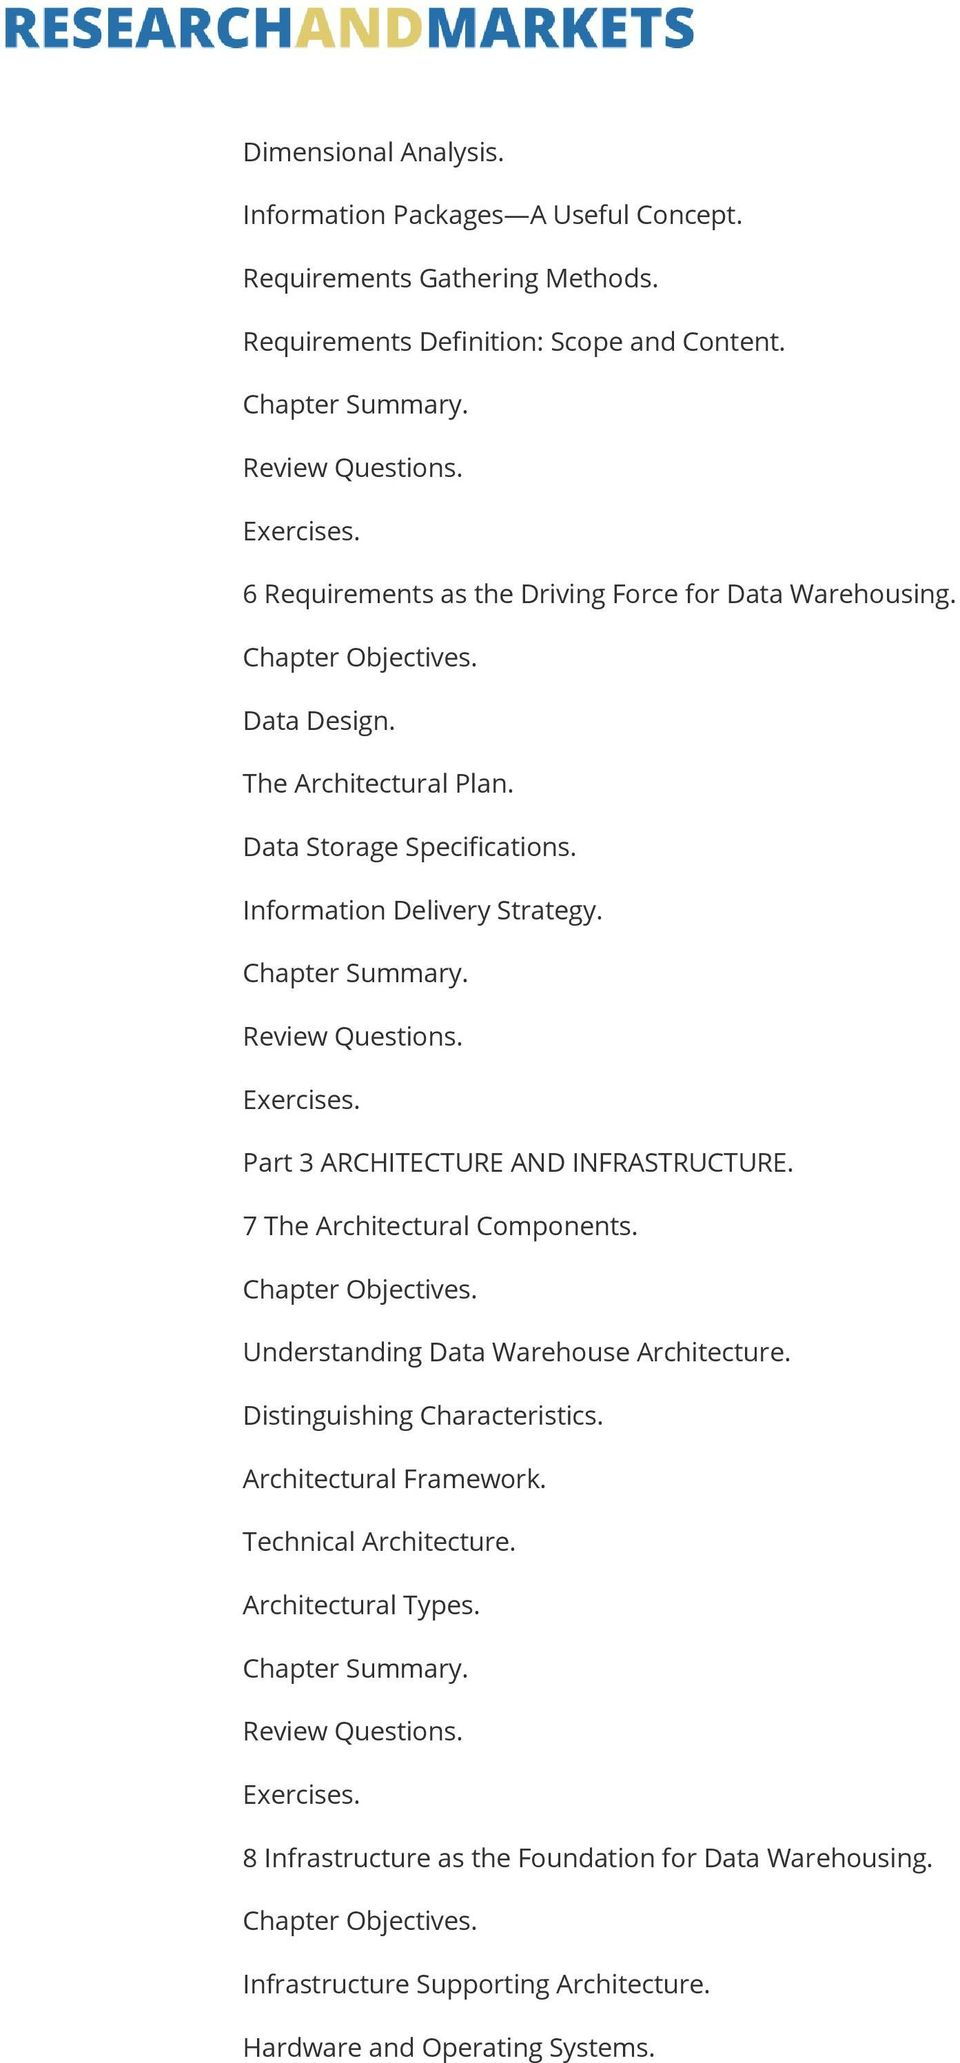 Part 3 ARCHITECTURE AND INFRASTRUCTURE. 7 The Architectural Components. Understanding Data Warehouse Architecture. Distinguishing Characteristics.